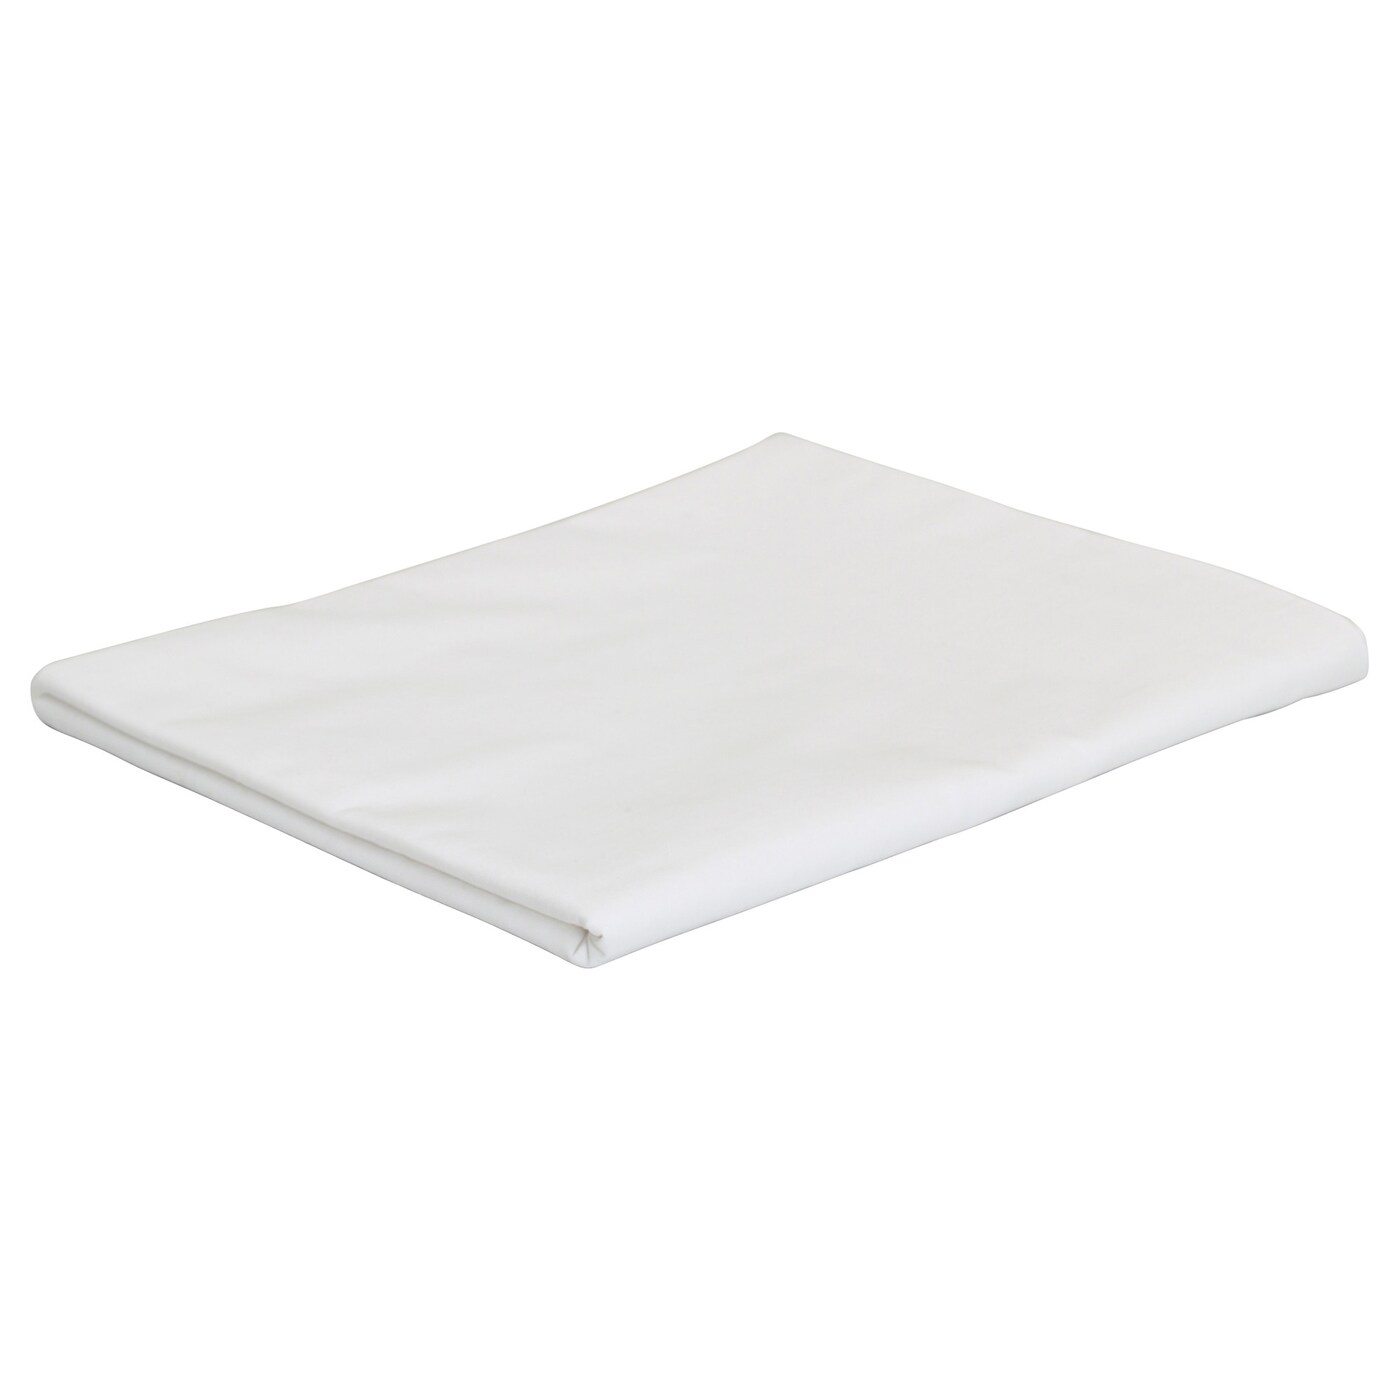 IKEA DVALA sheet Cotton, feels soft and nice against your skin. Fits beds that are 80-90 cm wide.